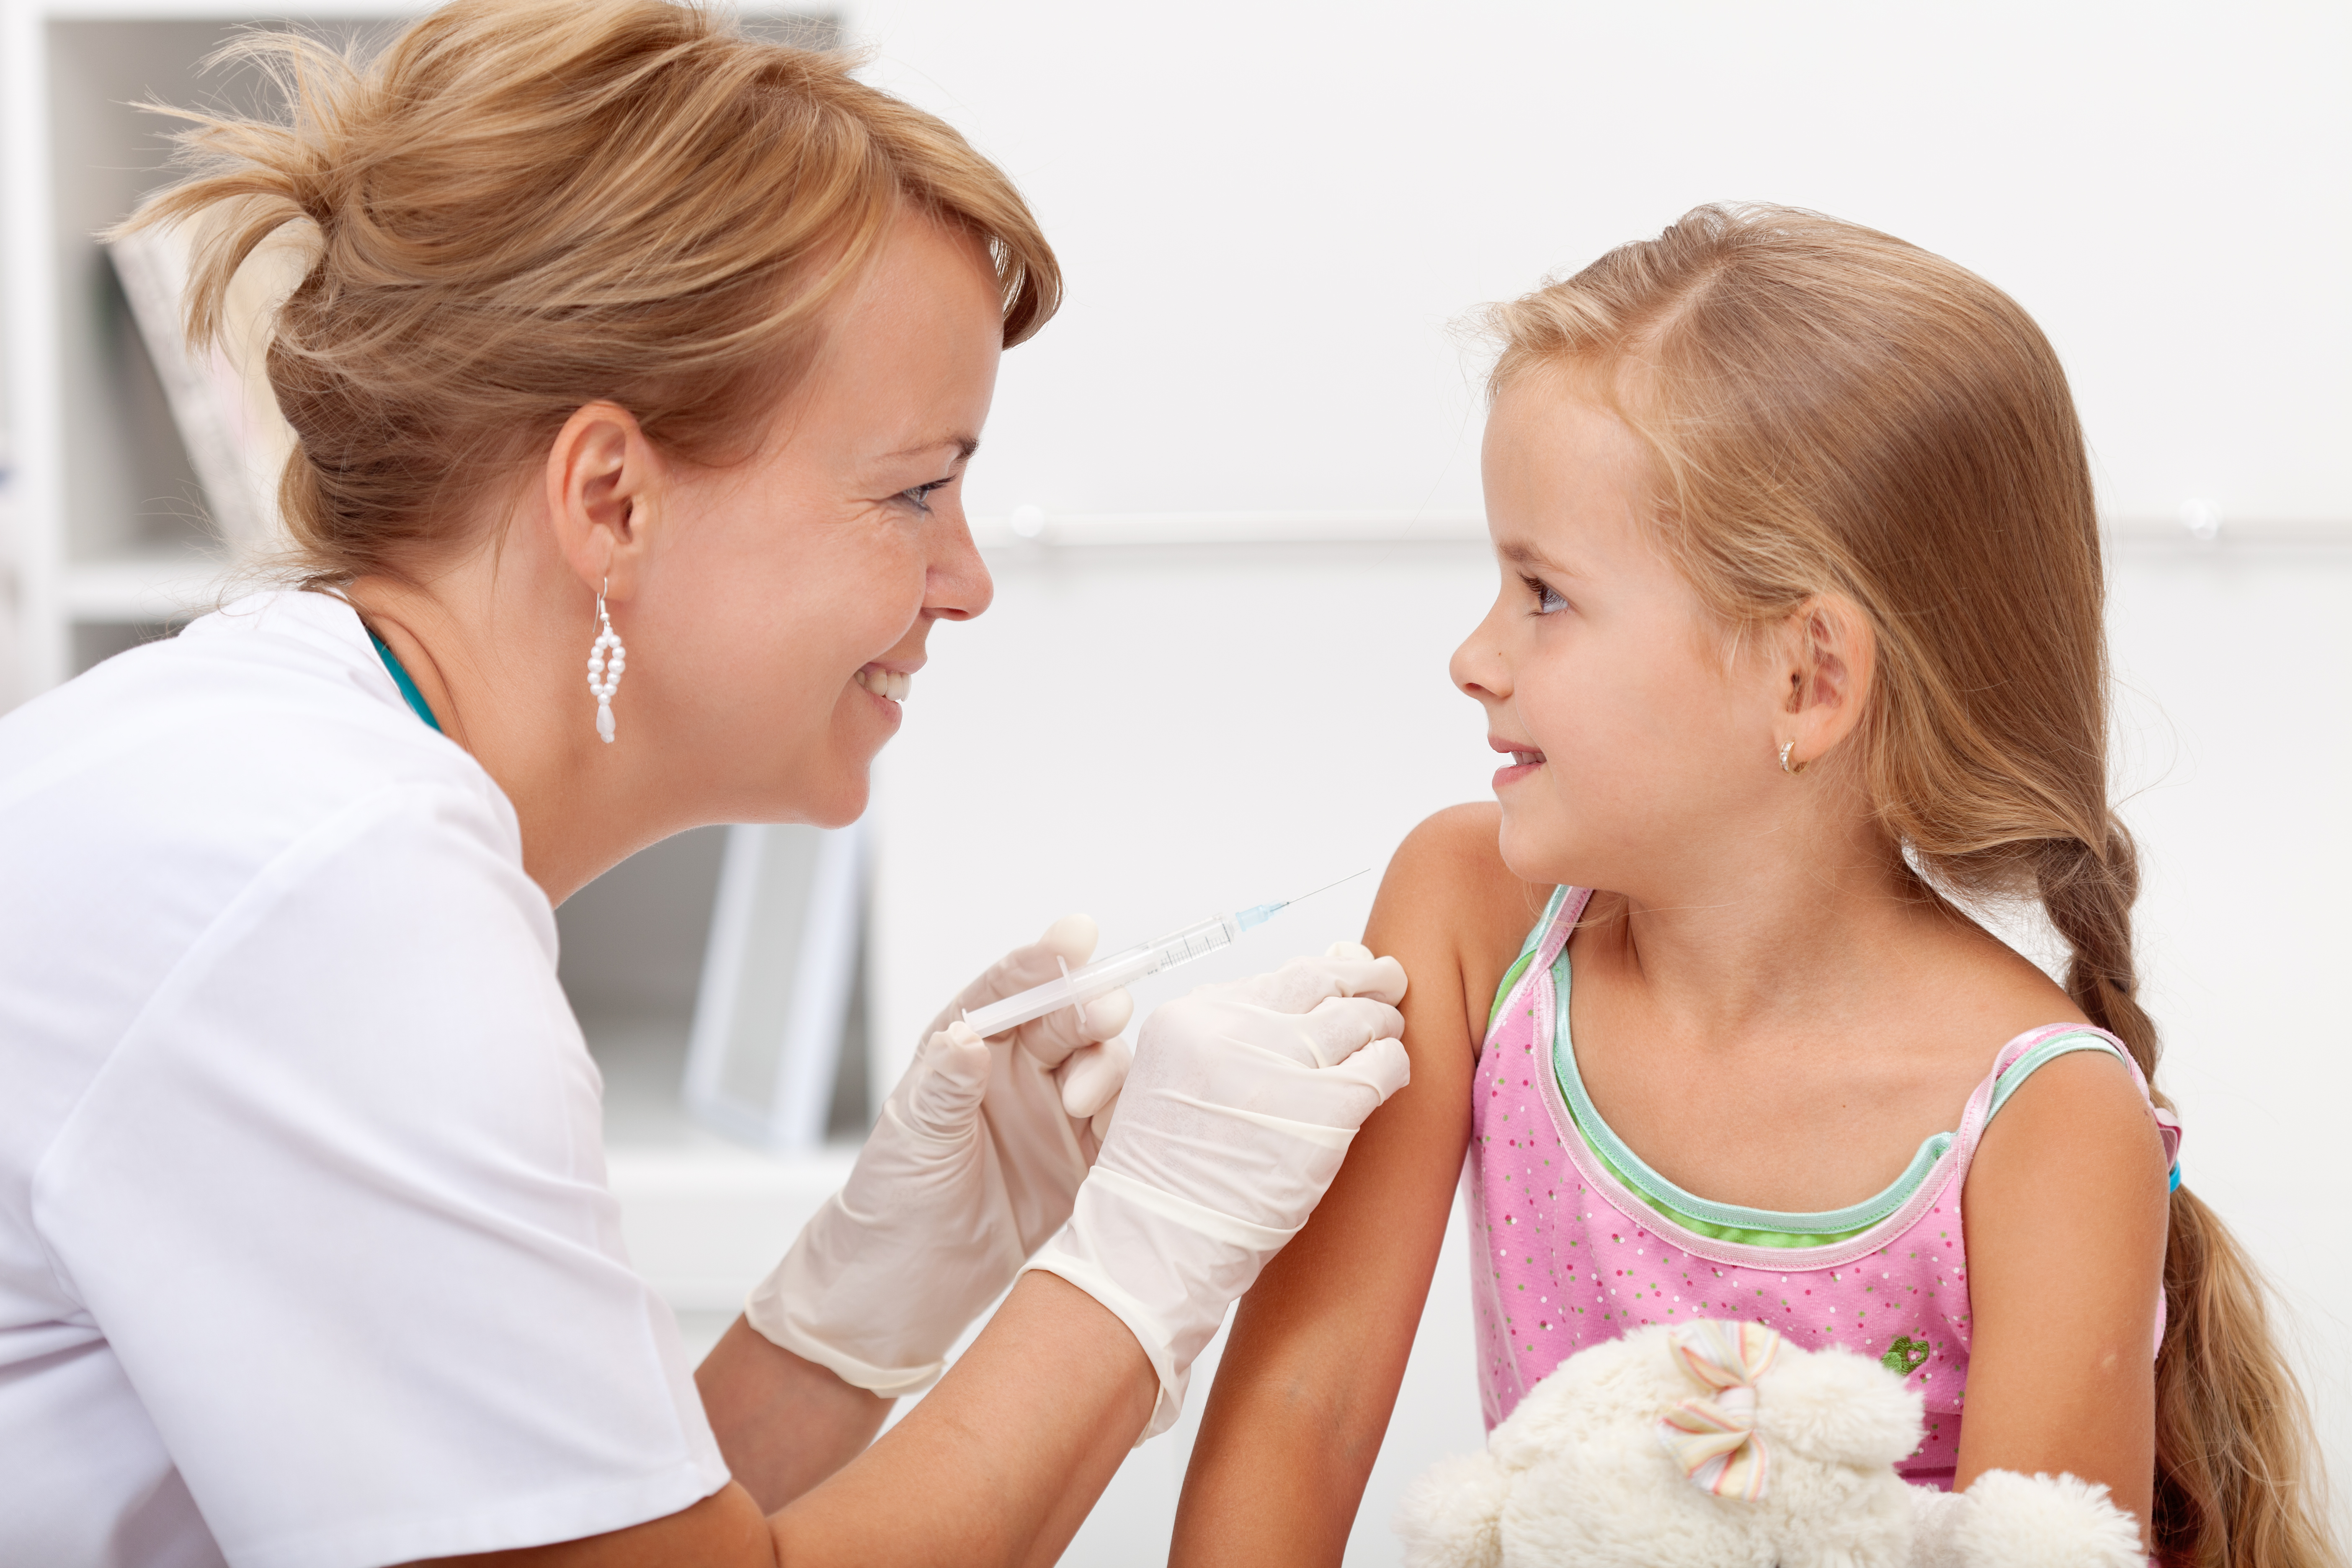 TBE vaccine (tick-borne encephalitis vaccine) and protection against ticks for babies and children